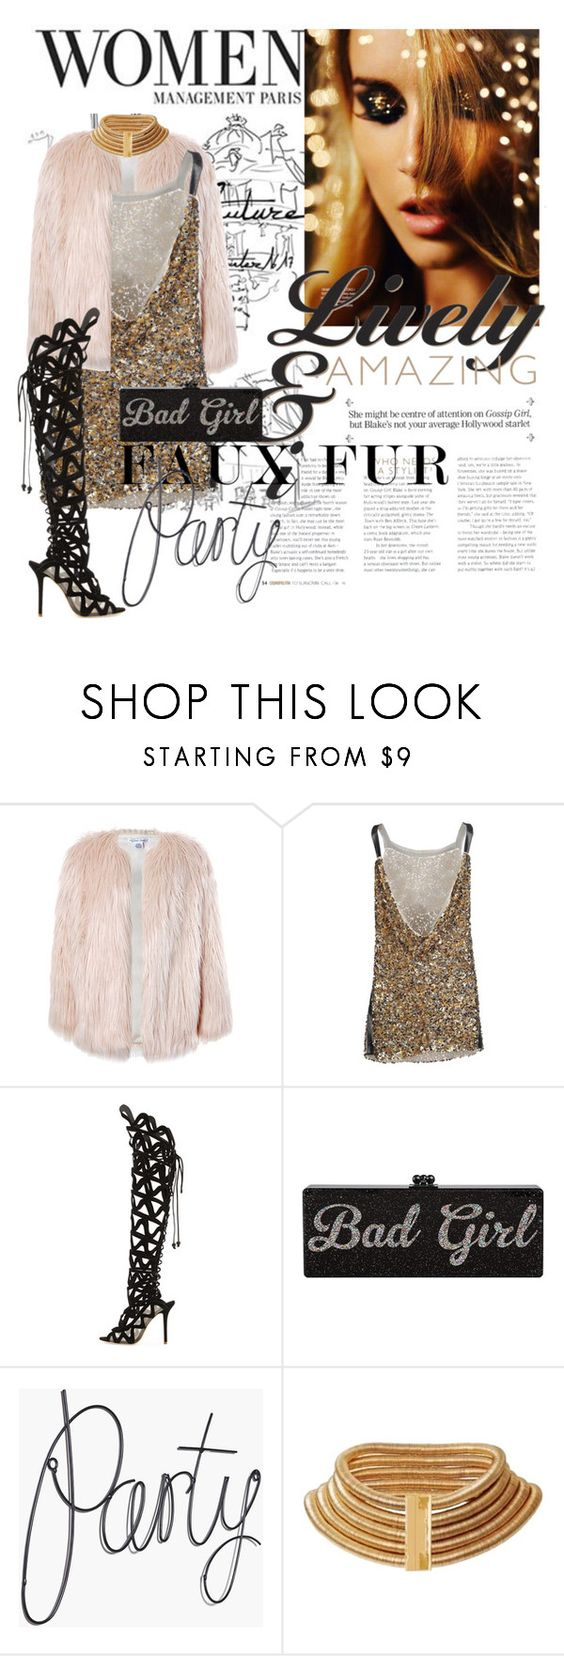 """""""Fancy Night Party"""" by khloesuertz ❤ liked on Polyvore featuring Sans Souci, Prada, Sophia Webster, Balmain, contest, girlsnightout and fauxfur"""